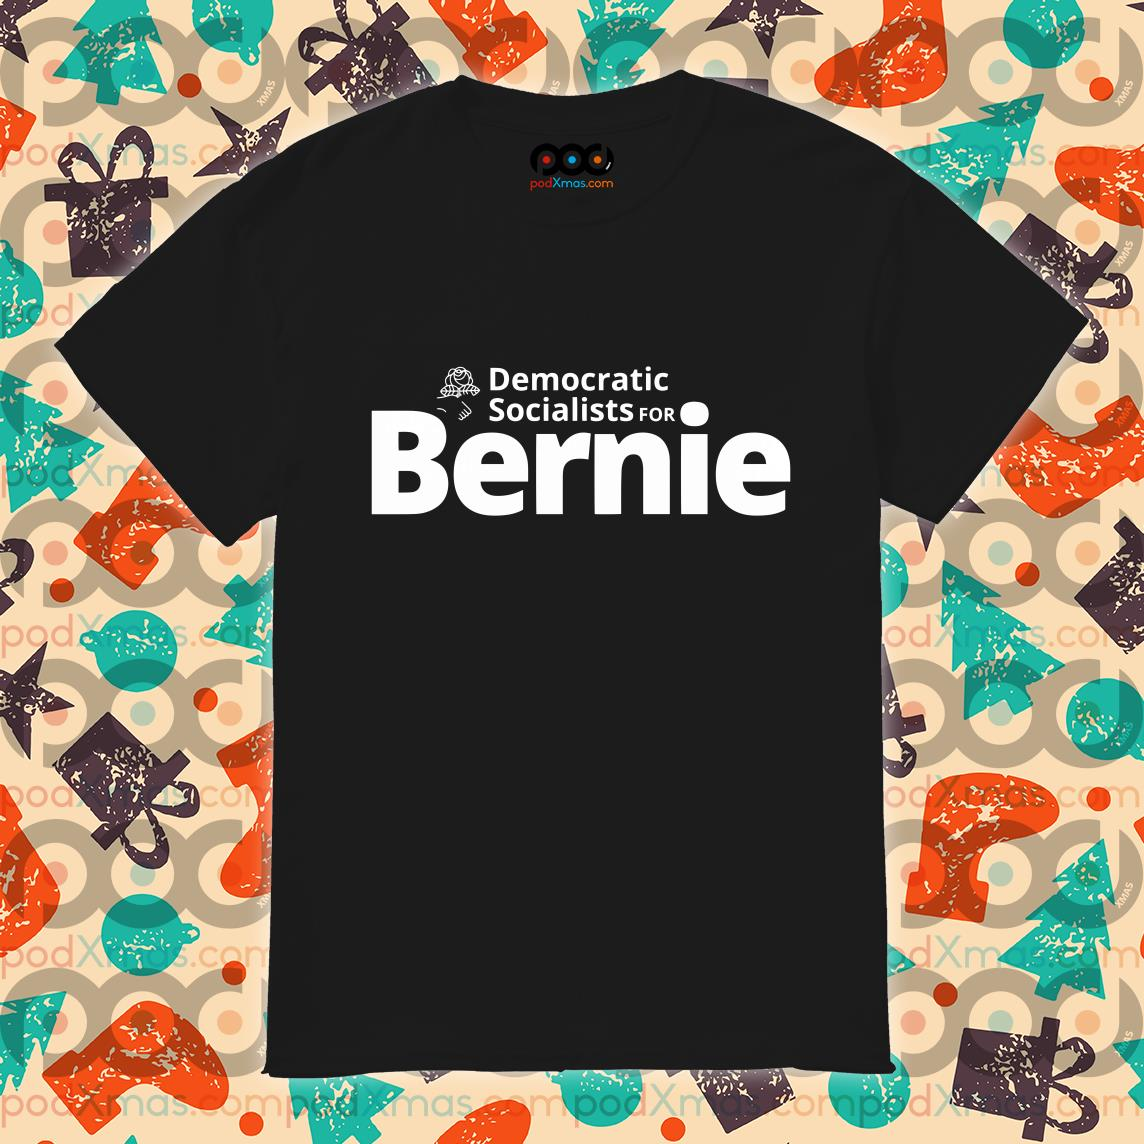 Democratic Socialists for Bernie shirt